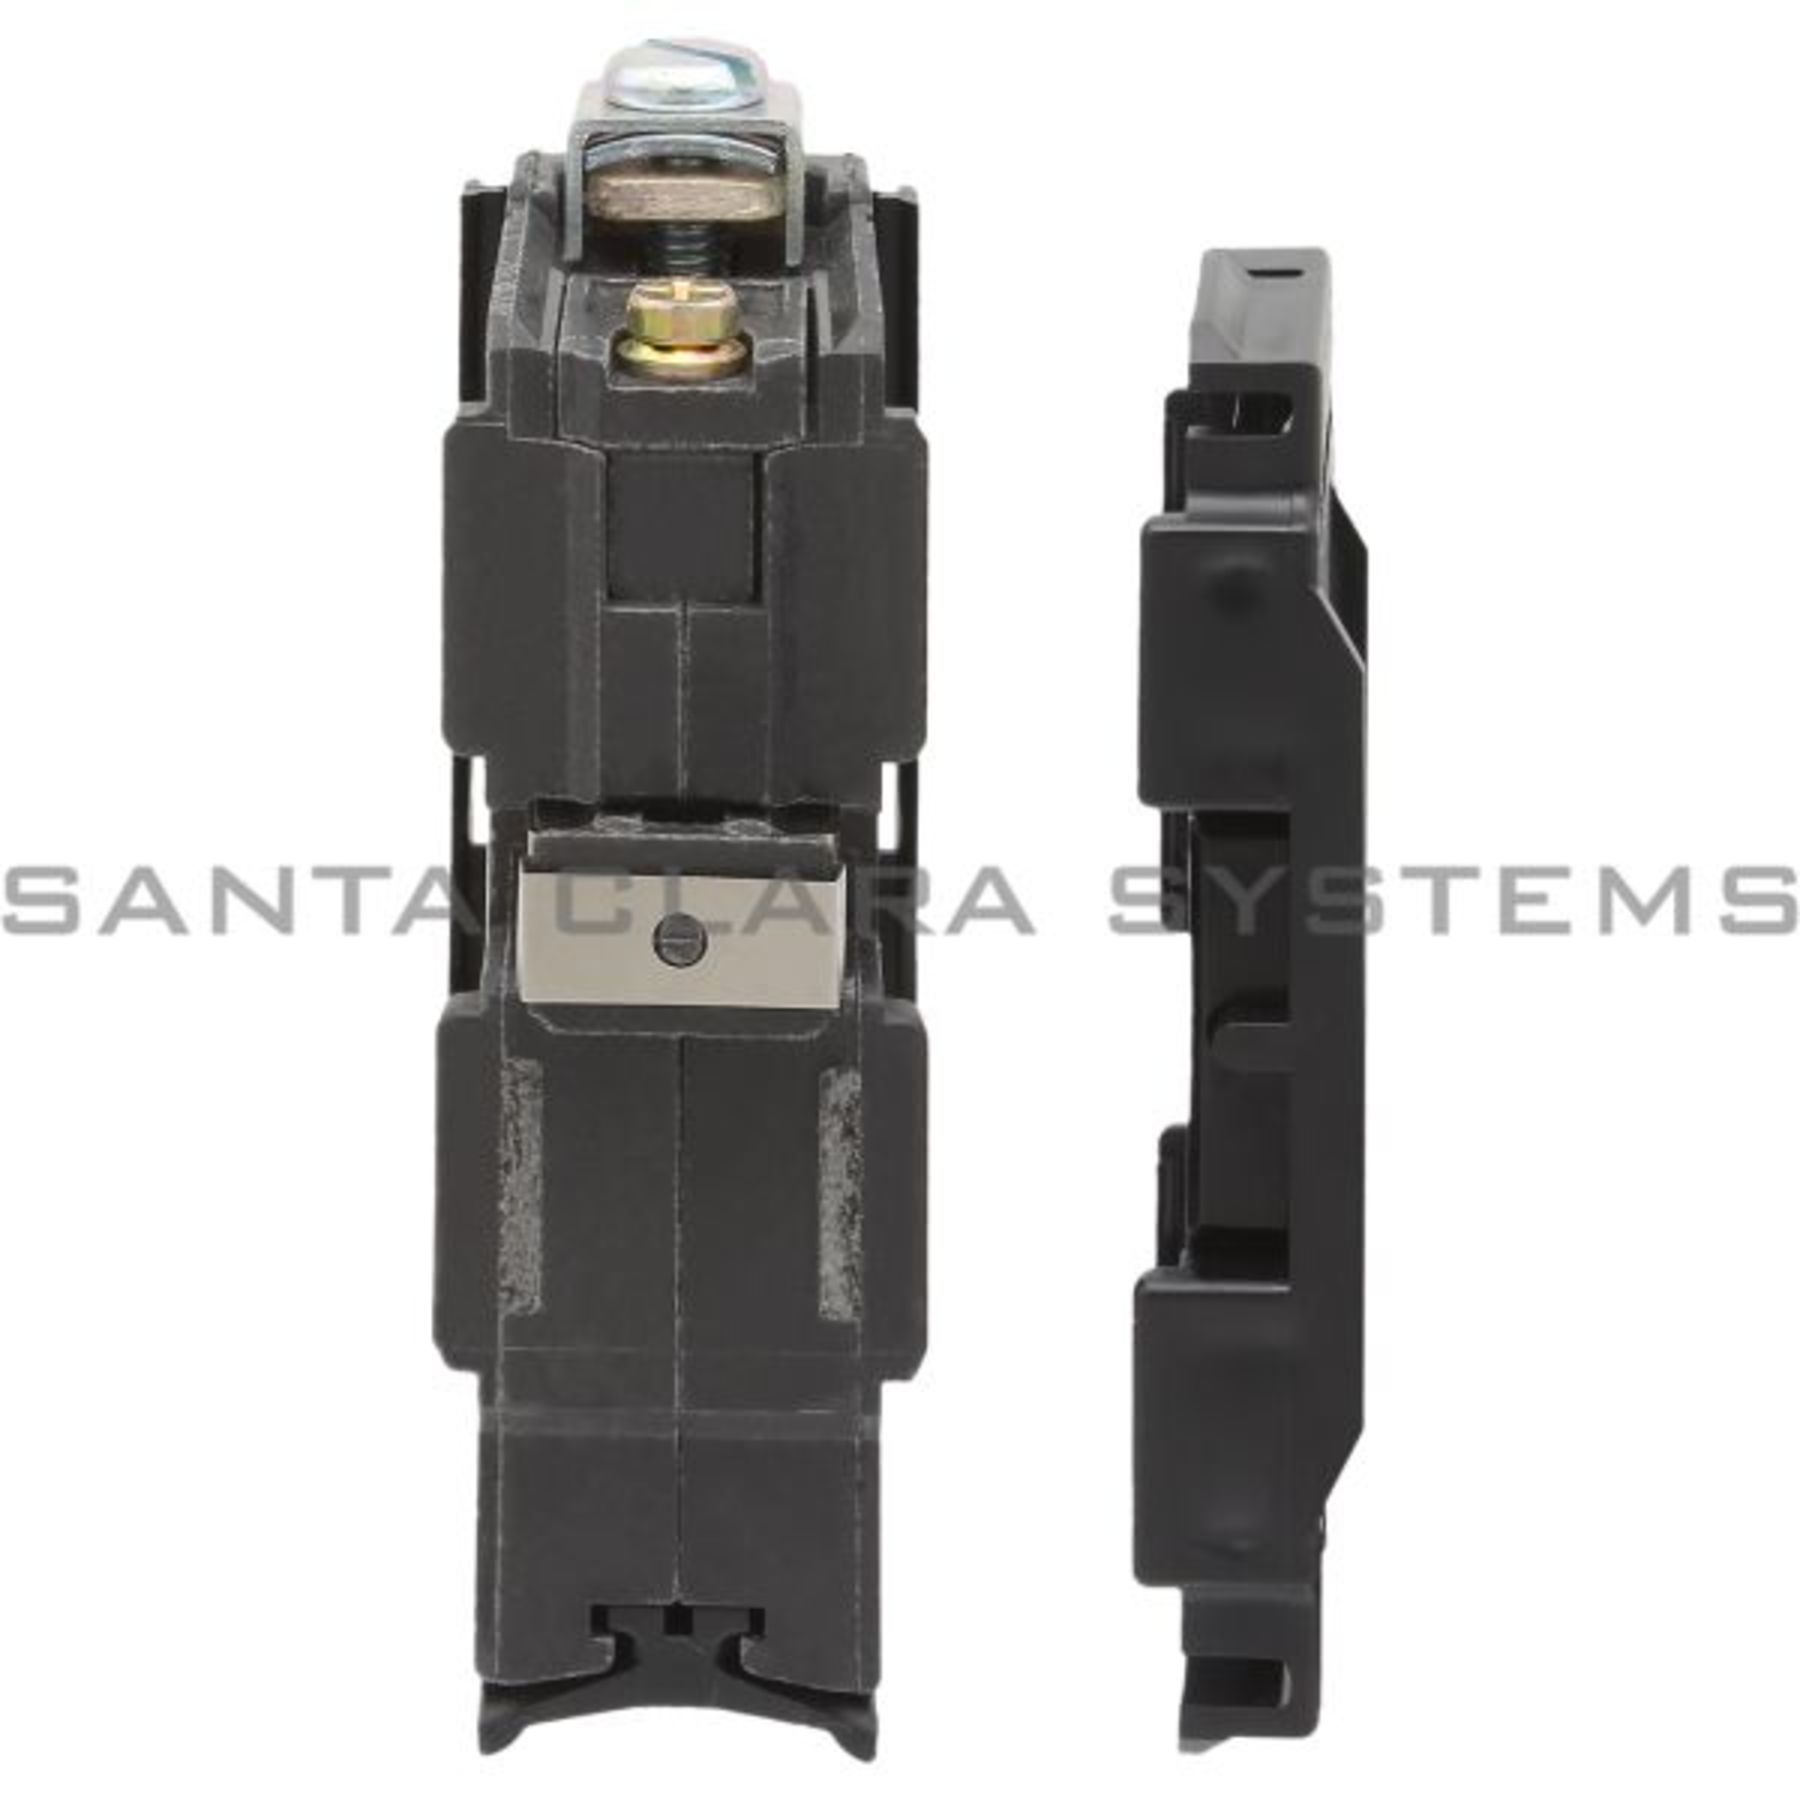 599-P01A Allen Bradley In stock and ready to ship - Santa